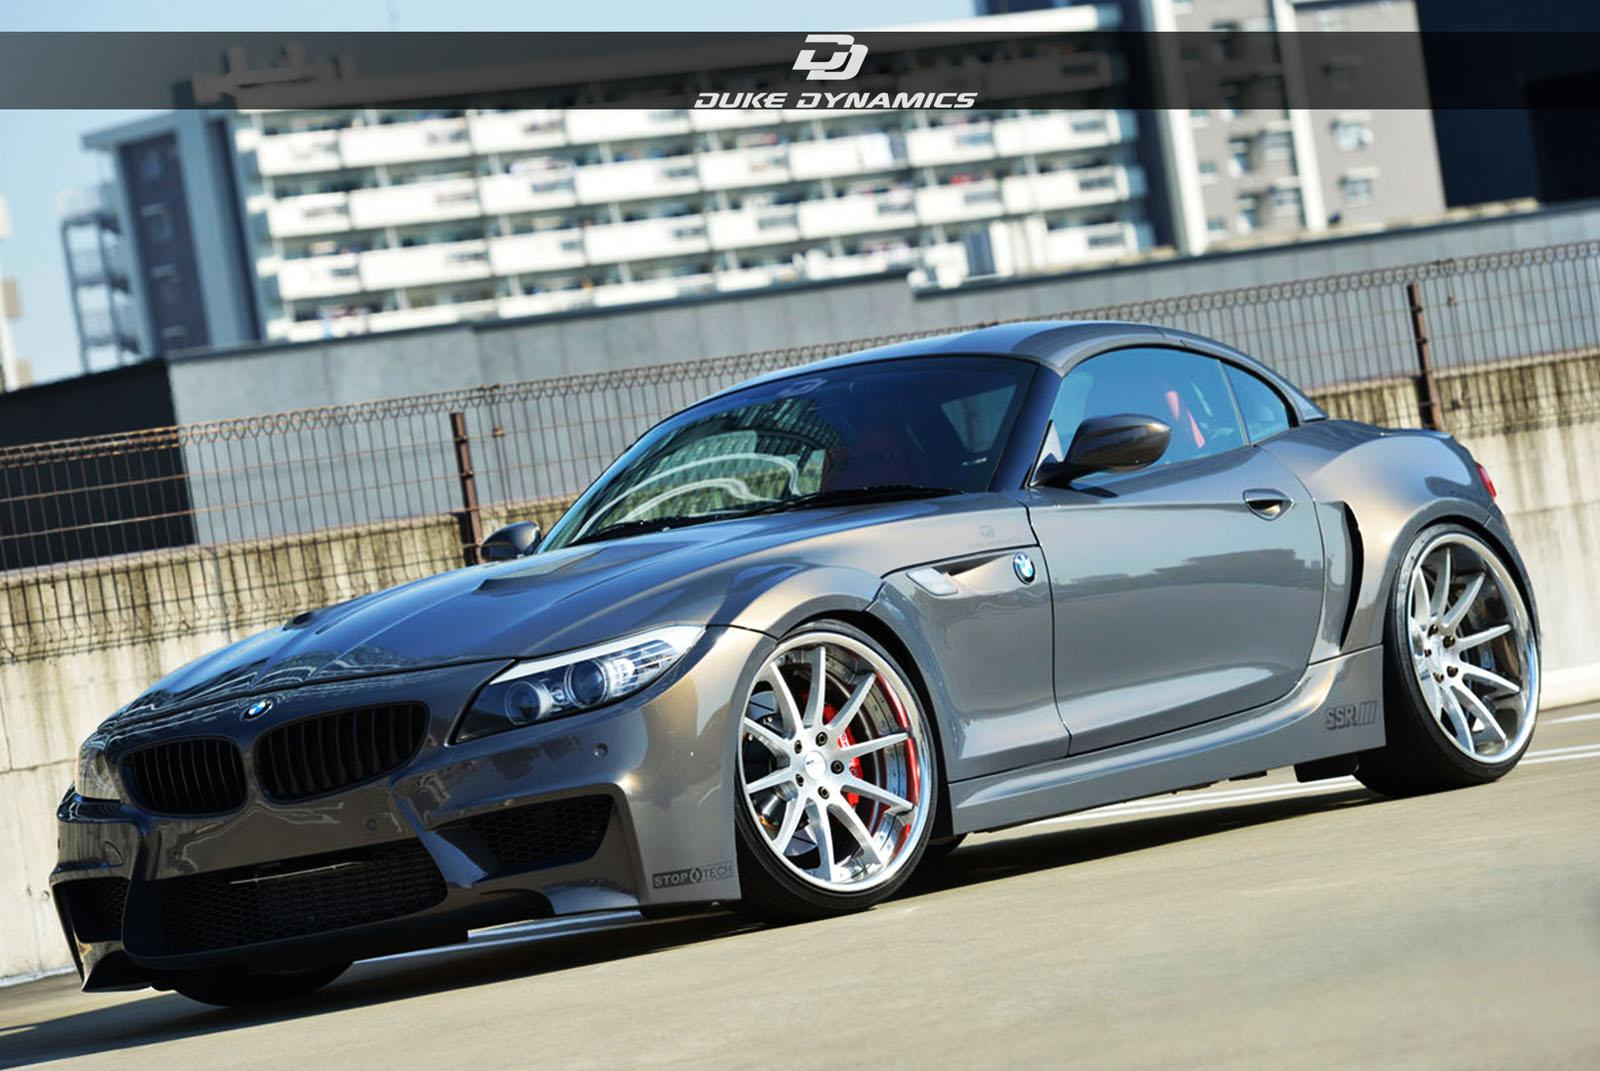 Duke Dynamics Bmw Z4 Wide Body Kit Picture 96629